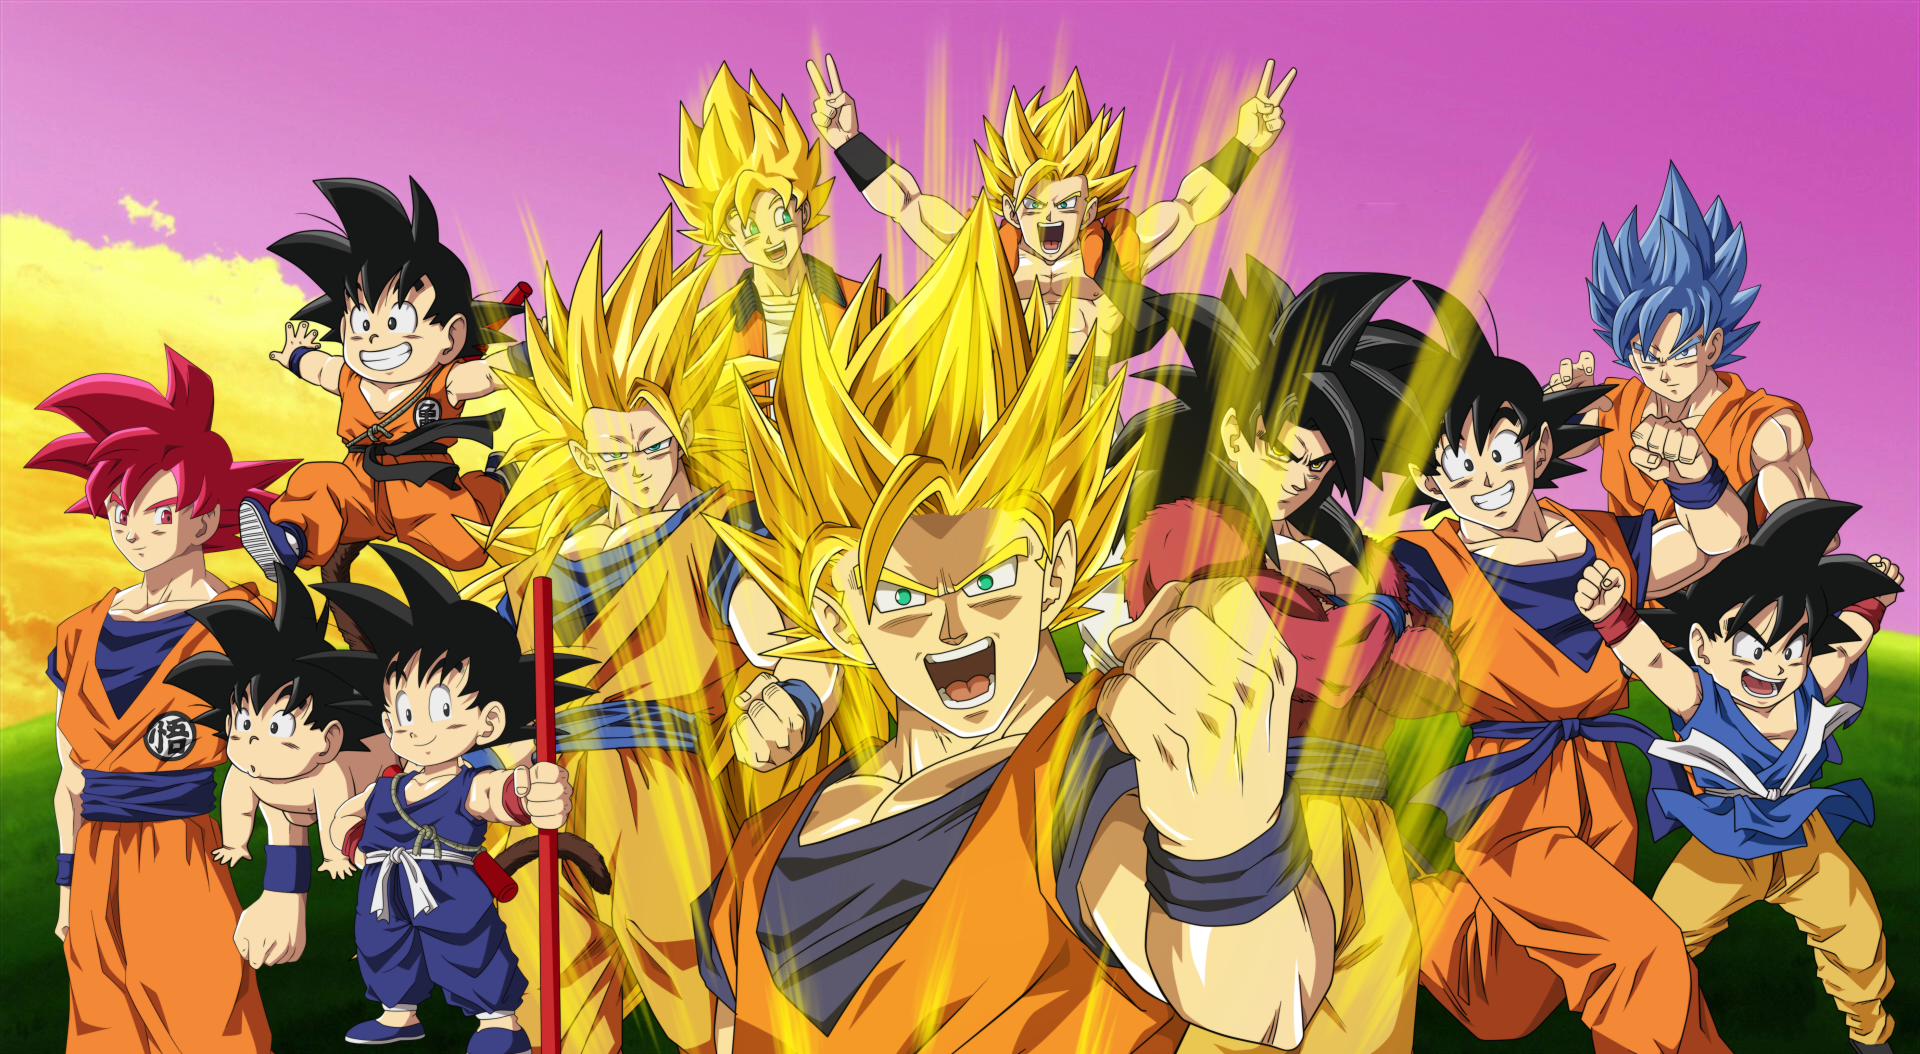 193 4k Ultra Hd Dragon Ball Z Wallpapers Background Images Wallpaper Abyss